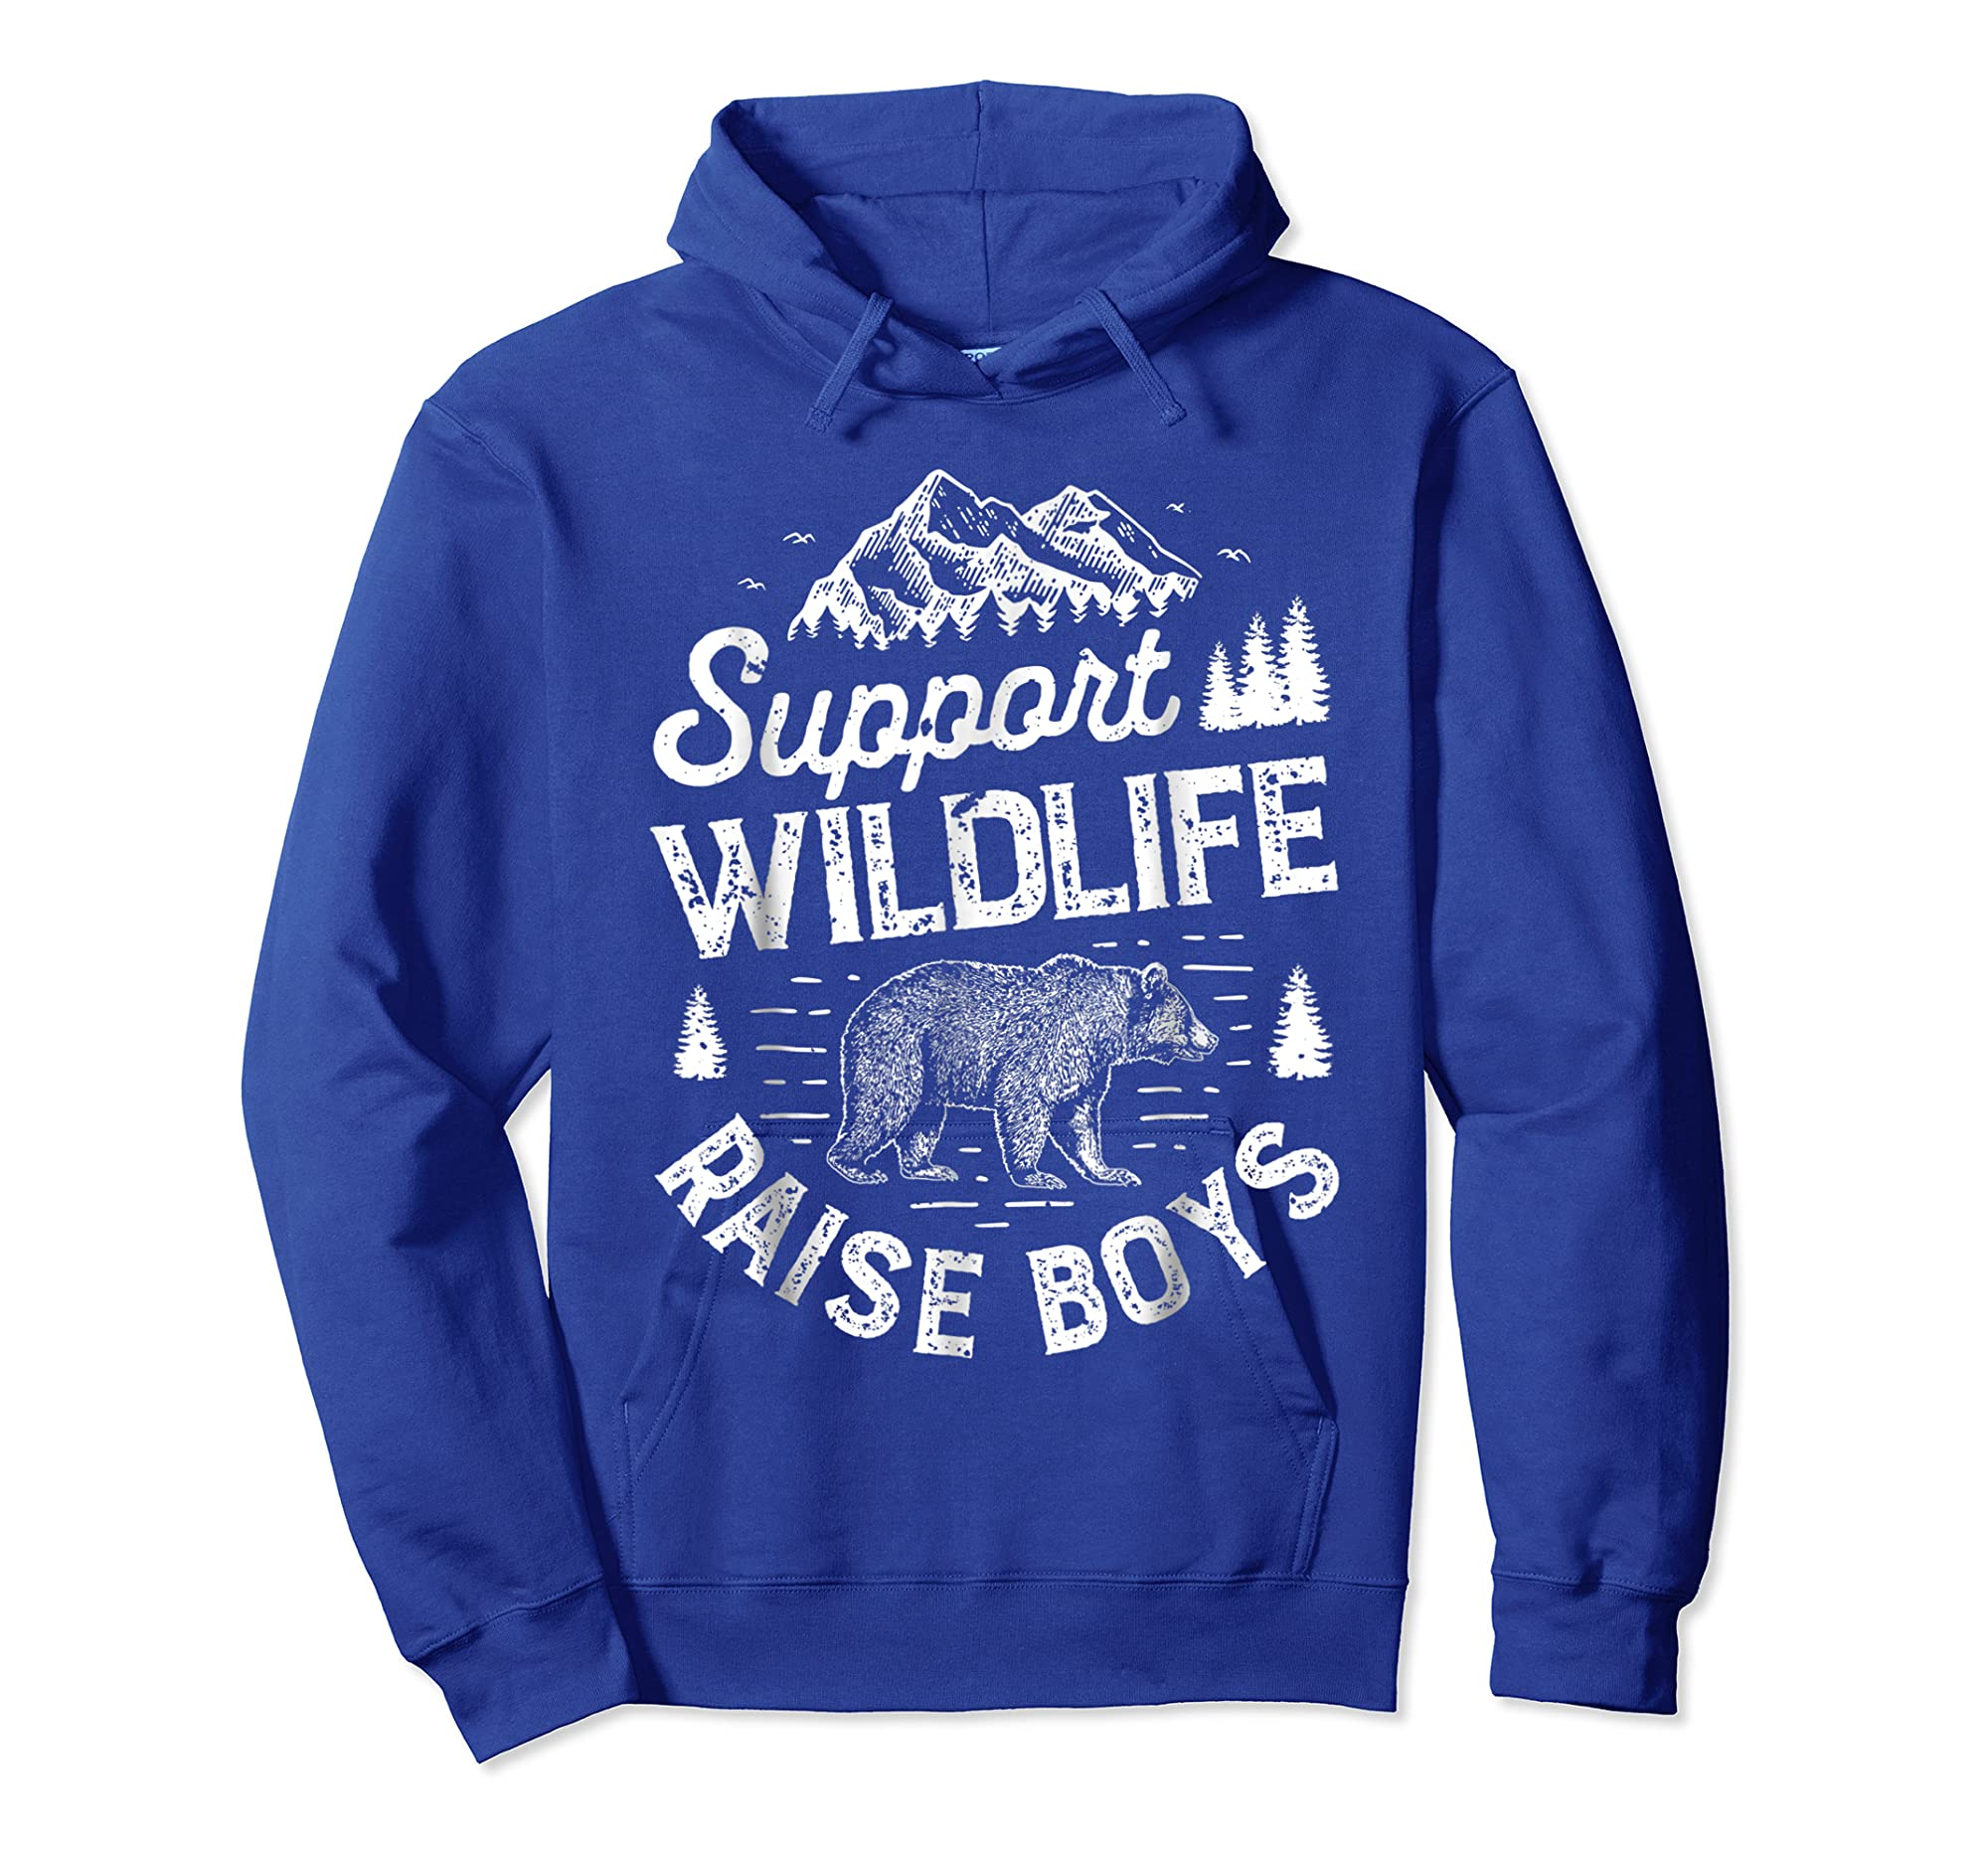 Top Selling Amazing Shirt Support Wildlife Raise T Shirt Mom Dad Mother Parents Hoodie Royal Blue